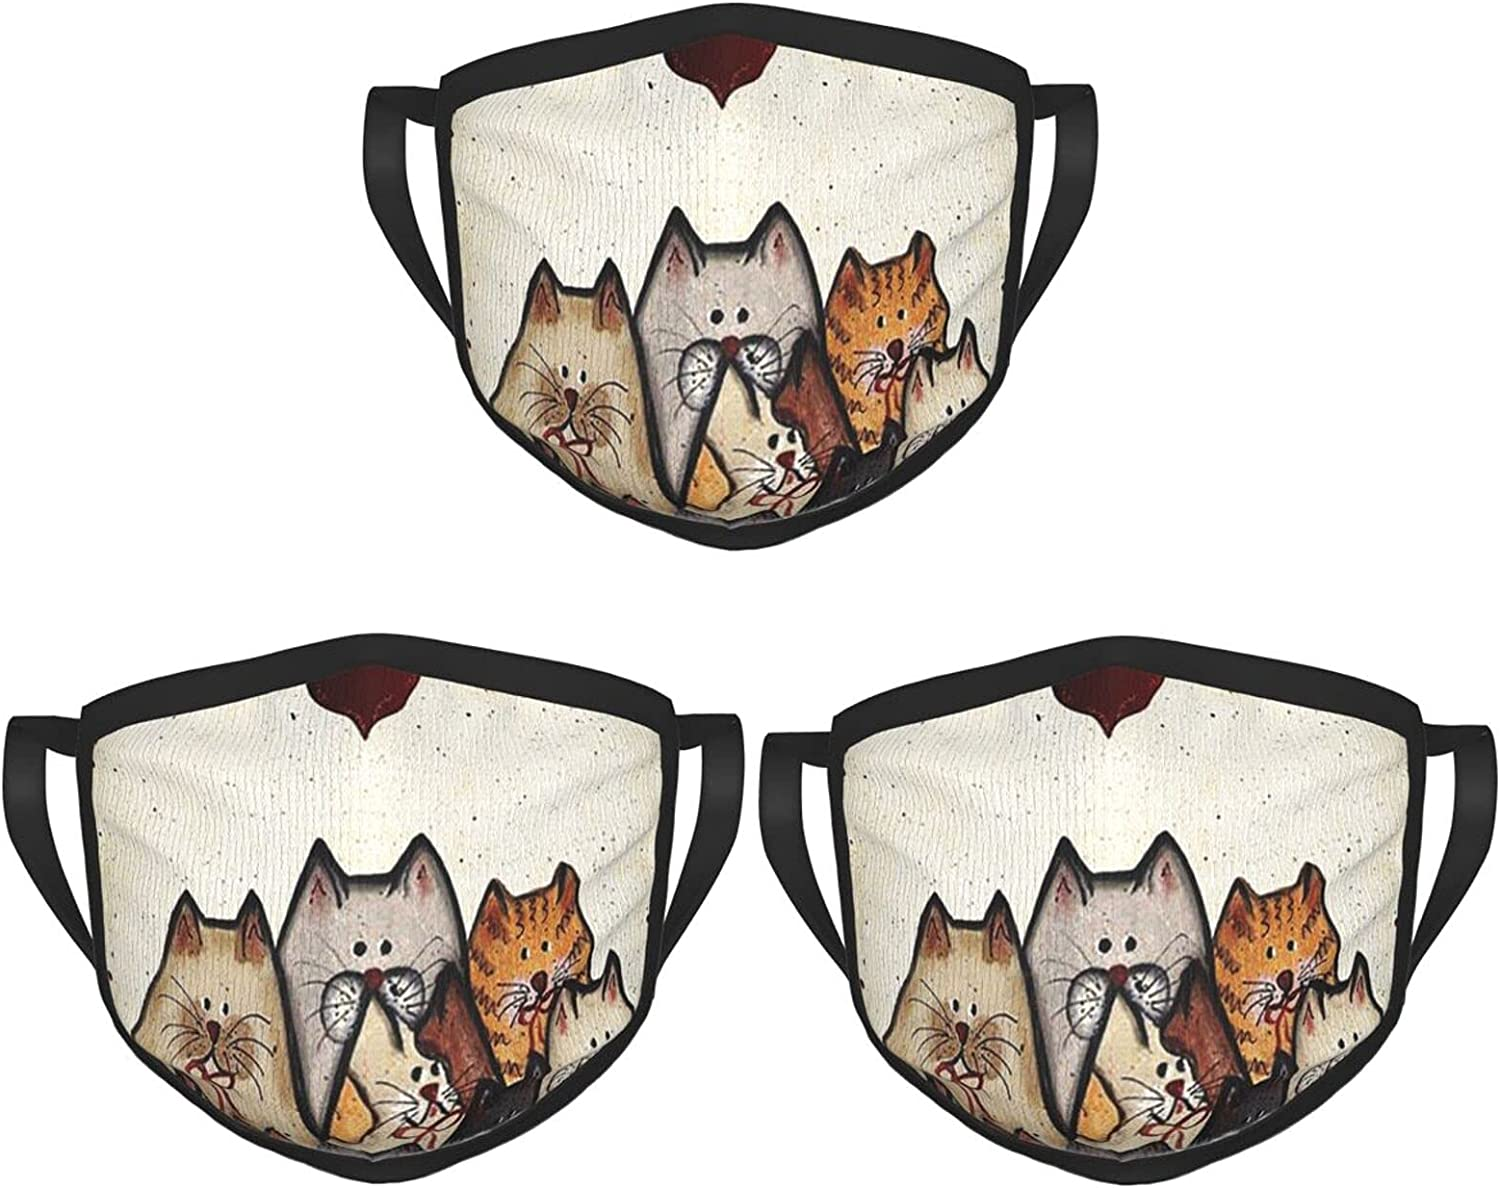 Balaclava Earmuffs Every Life Shuld Have 9 Cats Heart Face Mouth Cover Mask Reusable Washable Scarf Towel Cover Headwrap